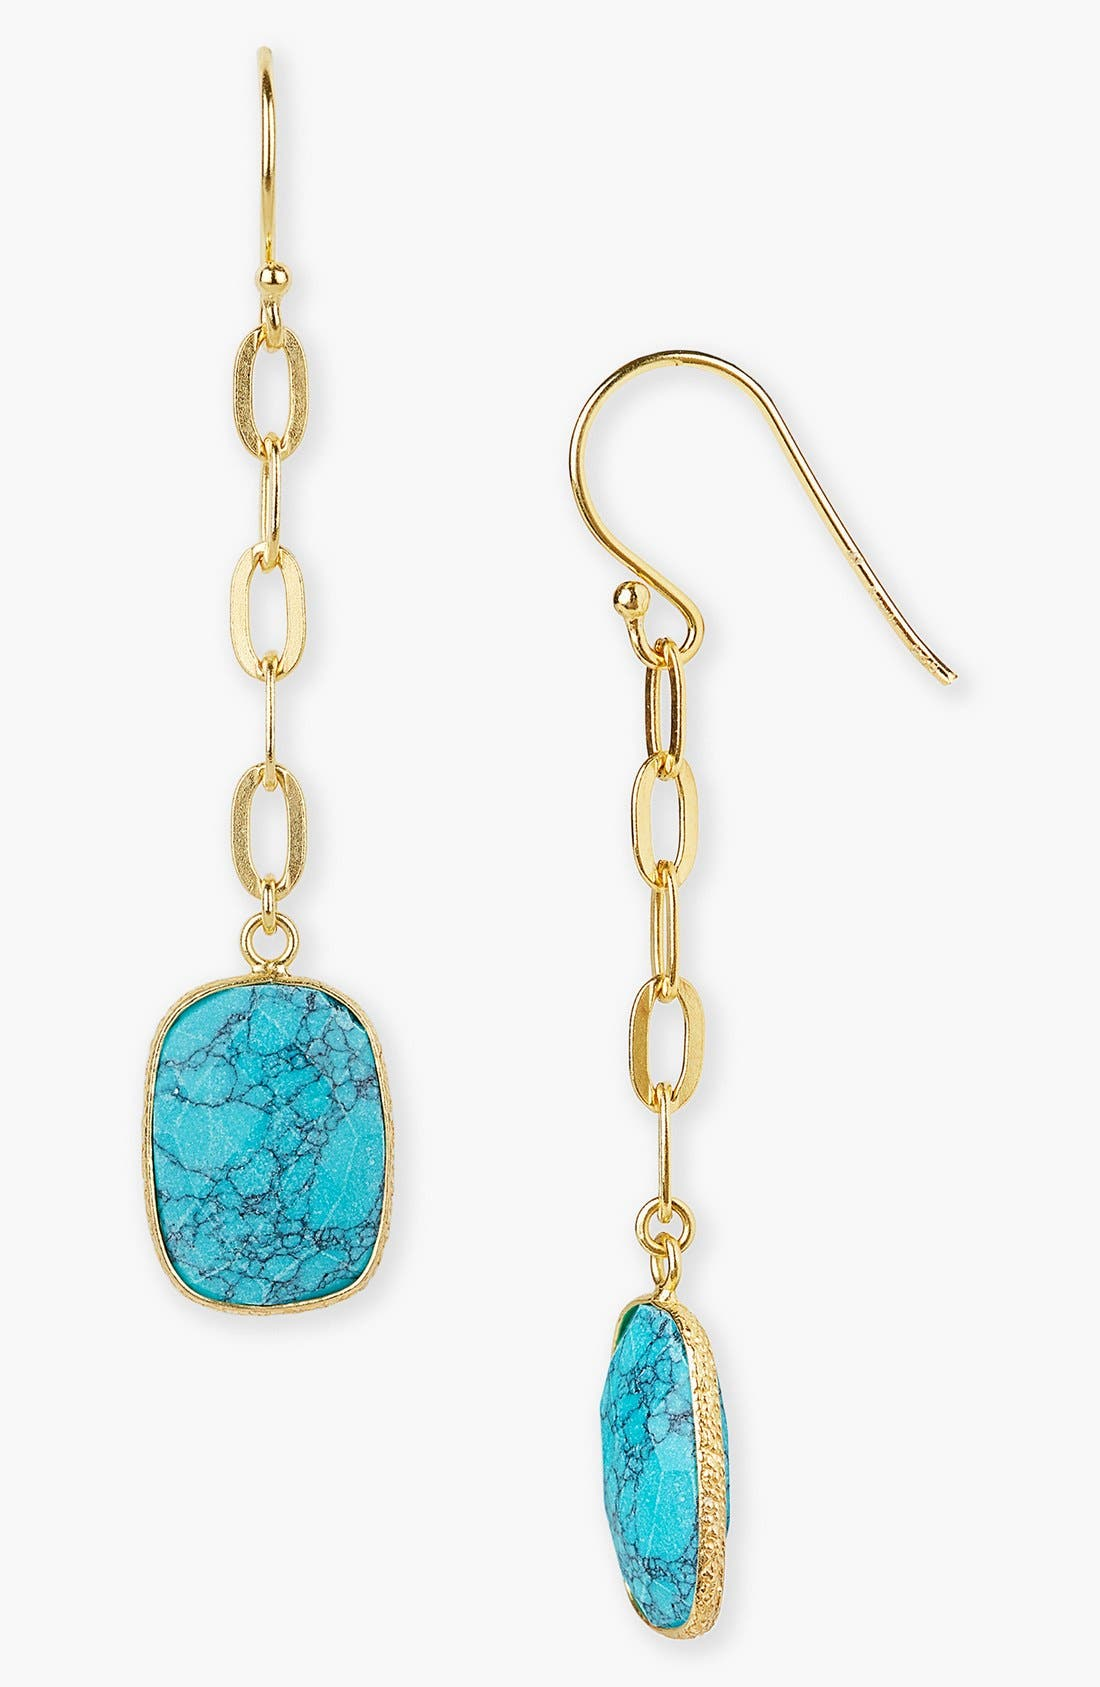 Main Image - Argento Vivo Linear Turquoise Drop Earrings